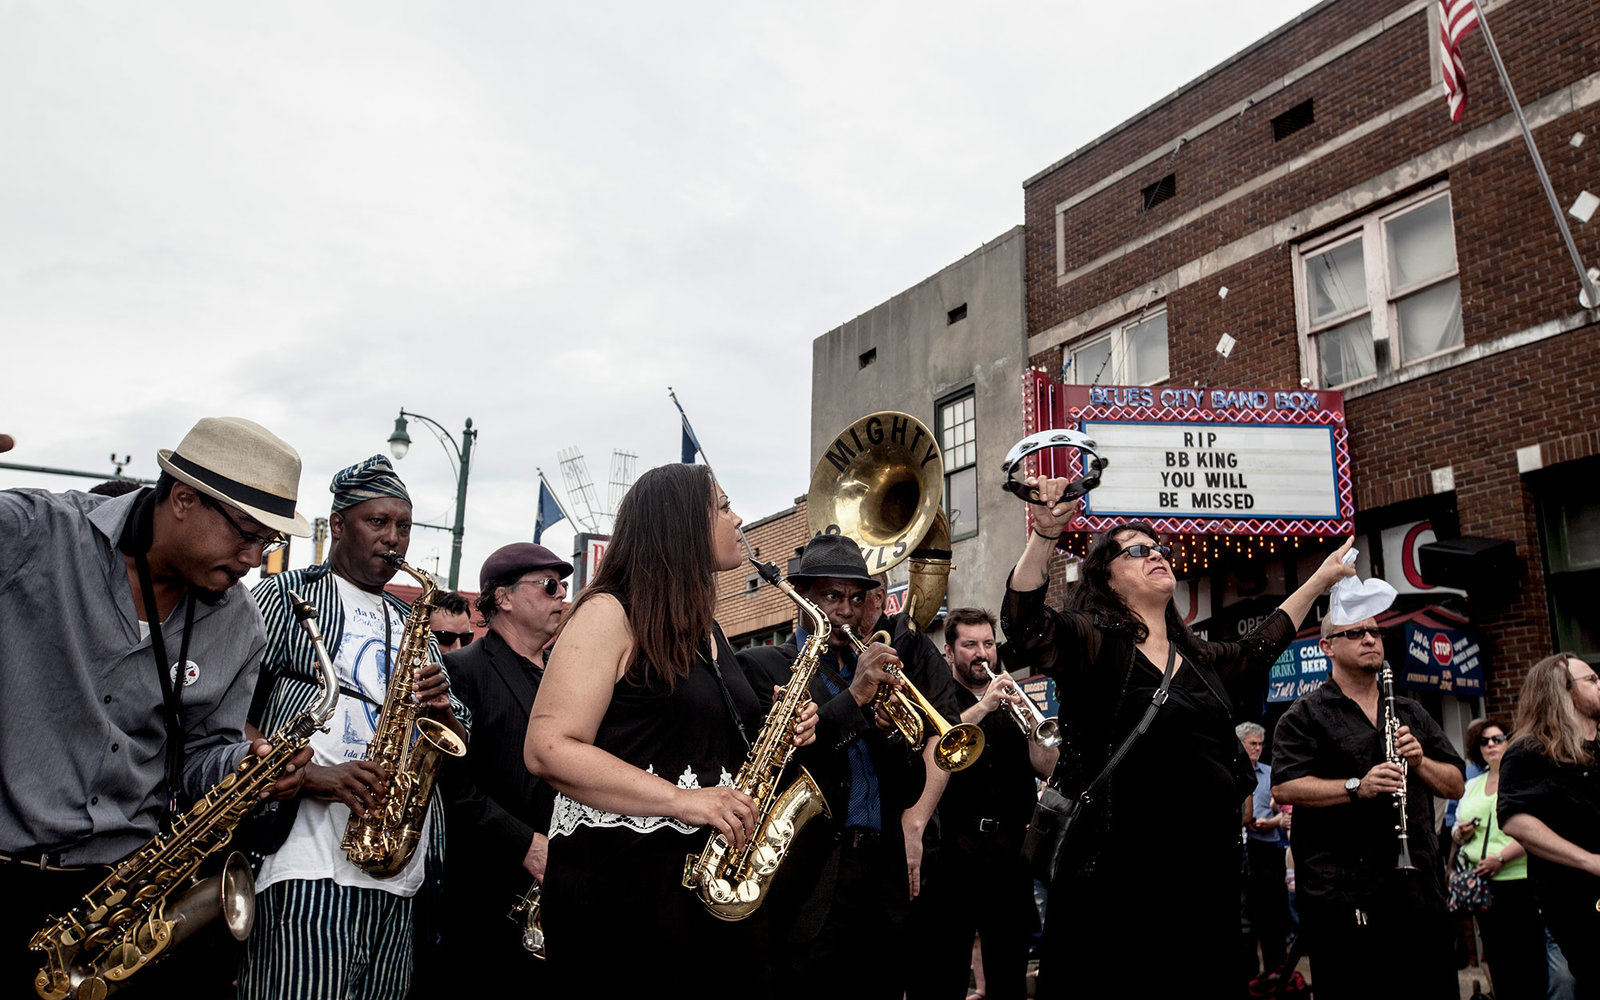 MEMPHIS, TN - MAY 27: The Mighty Souls Brass Band perform in the processional down Beale Street following the memorial in honor of B.B. King on May 27, 2015 in Memphis, Tennessee. King passed away on May 14, 2015 at the age of 89. (Photo by Andrea Morales